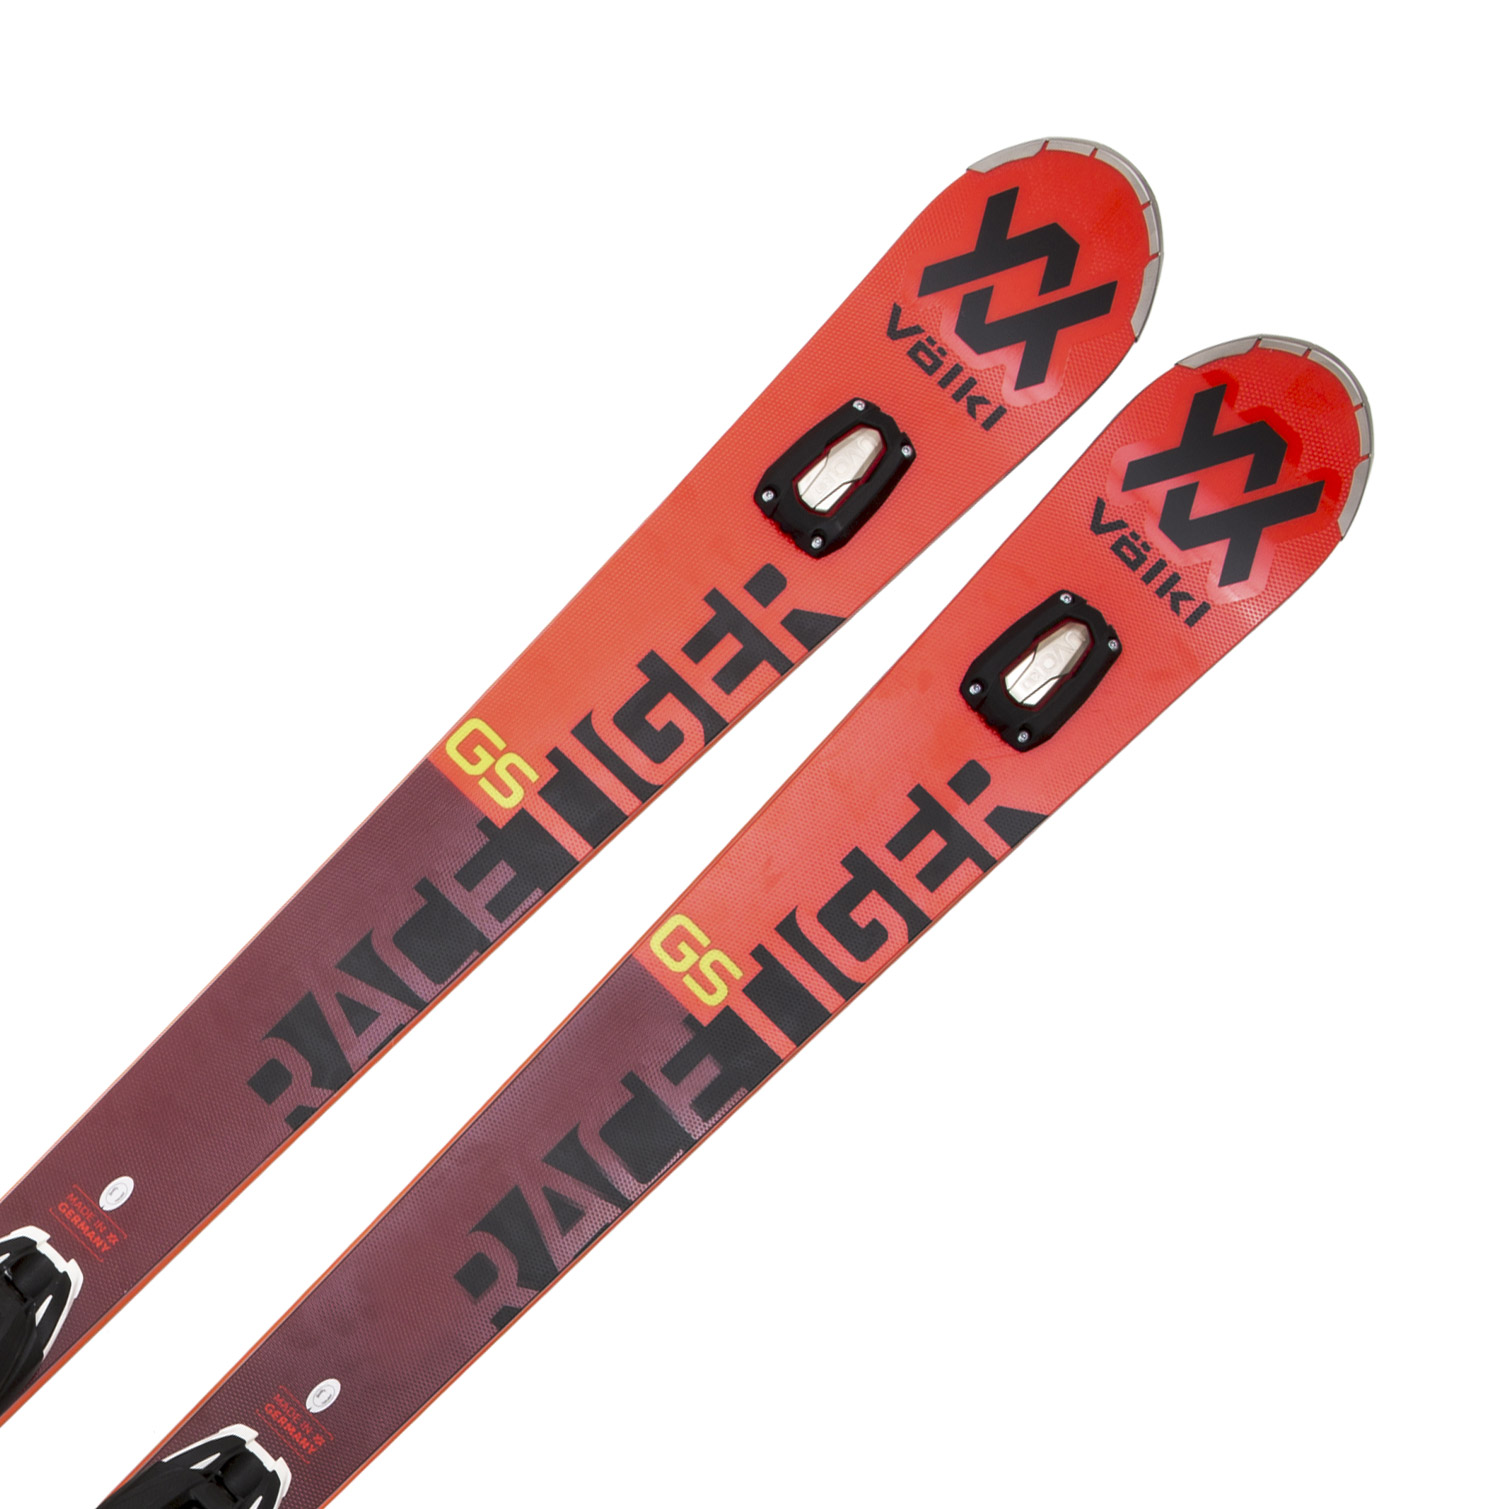 Volkl Racetiger GS + vázání rMotion2 12 GW black red 185